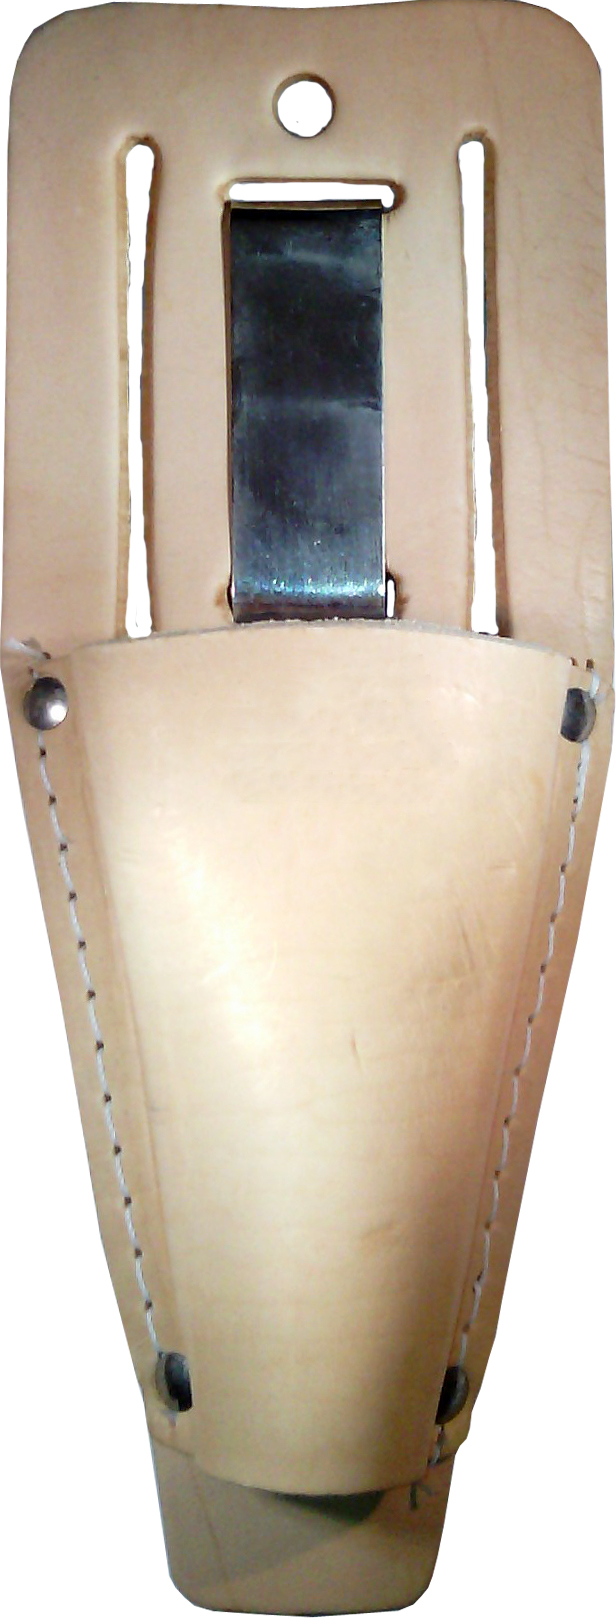 Holster HJ262 Leather Pruner Sheath w/Belt Loop and Metal Clip for Pruners / Folding Saws